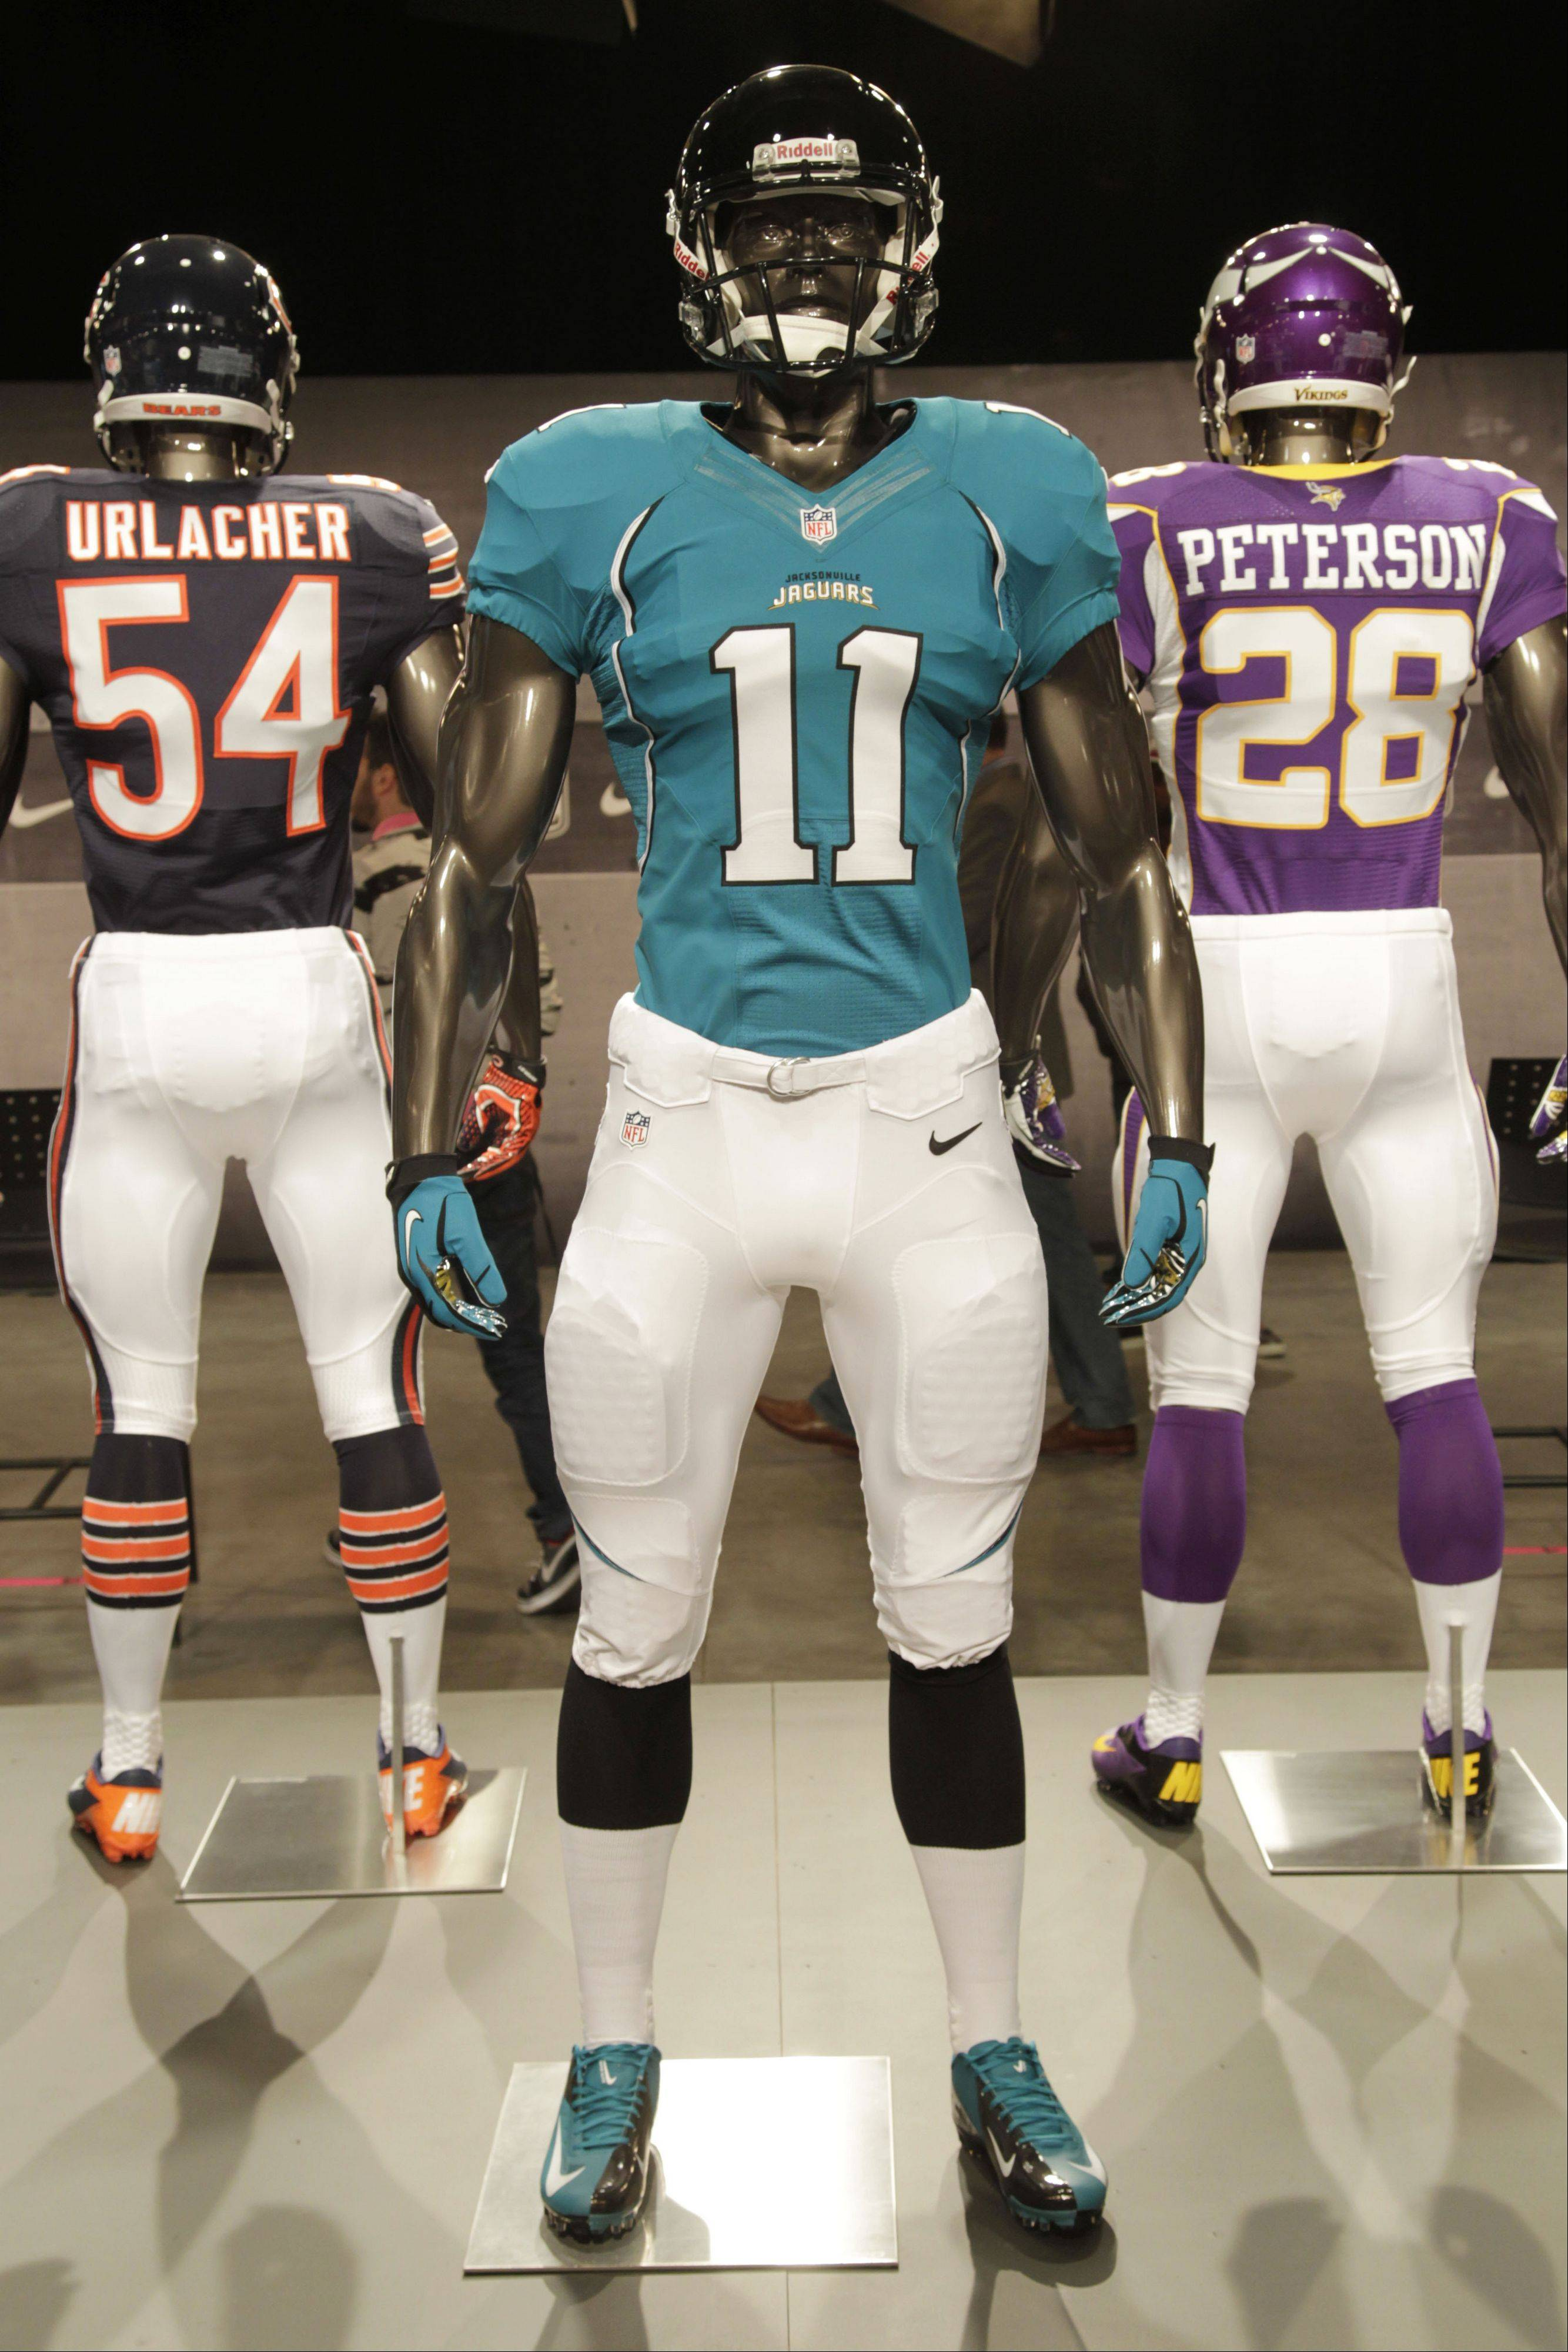 The new Jacksonville Jaguars uniform is displayed on a mannequin in New York, Tuesday, April 3, 2012. NFL has unveiled its new sleek uniforms designed by Nike. While most of the new uniforms are not very different visually, they all are made with new technology that make them lighter, dryer and more comfortable.